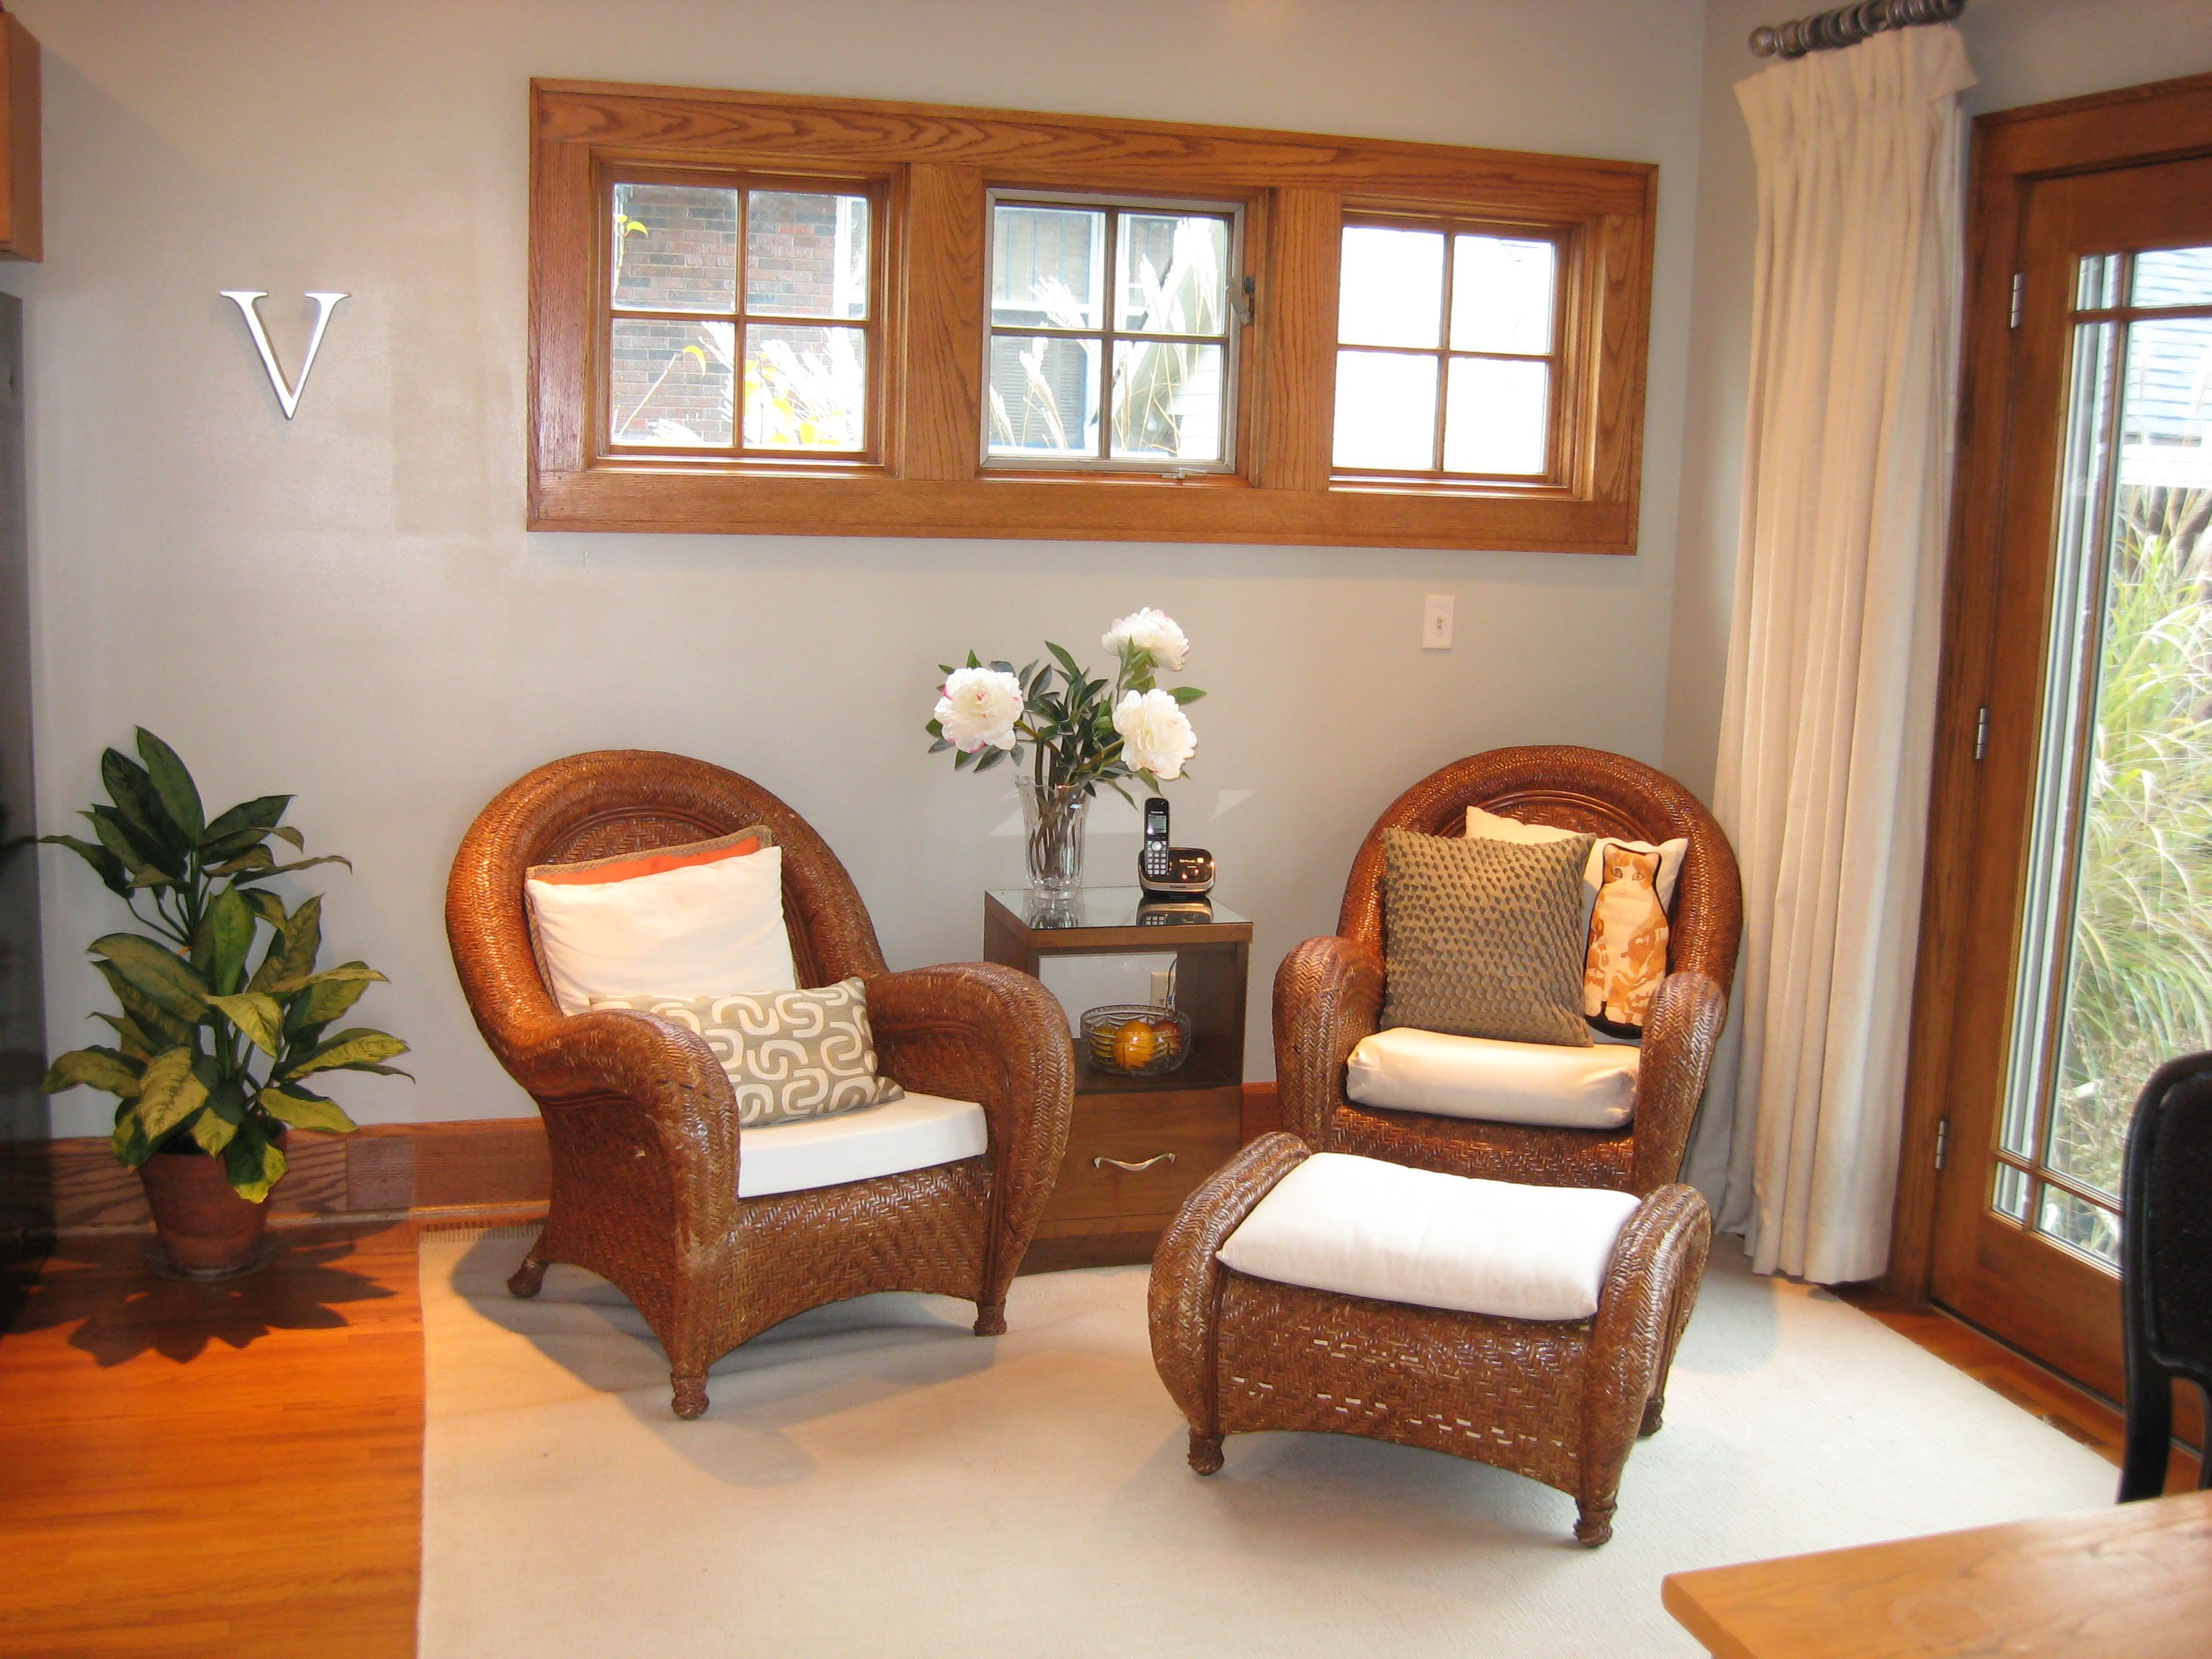 Warm Gray Walls Complement The Wood Tones Of This Home Office Seating Area.  Accent On